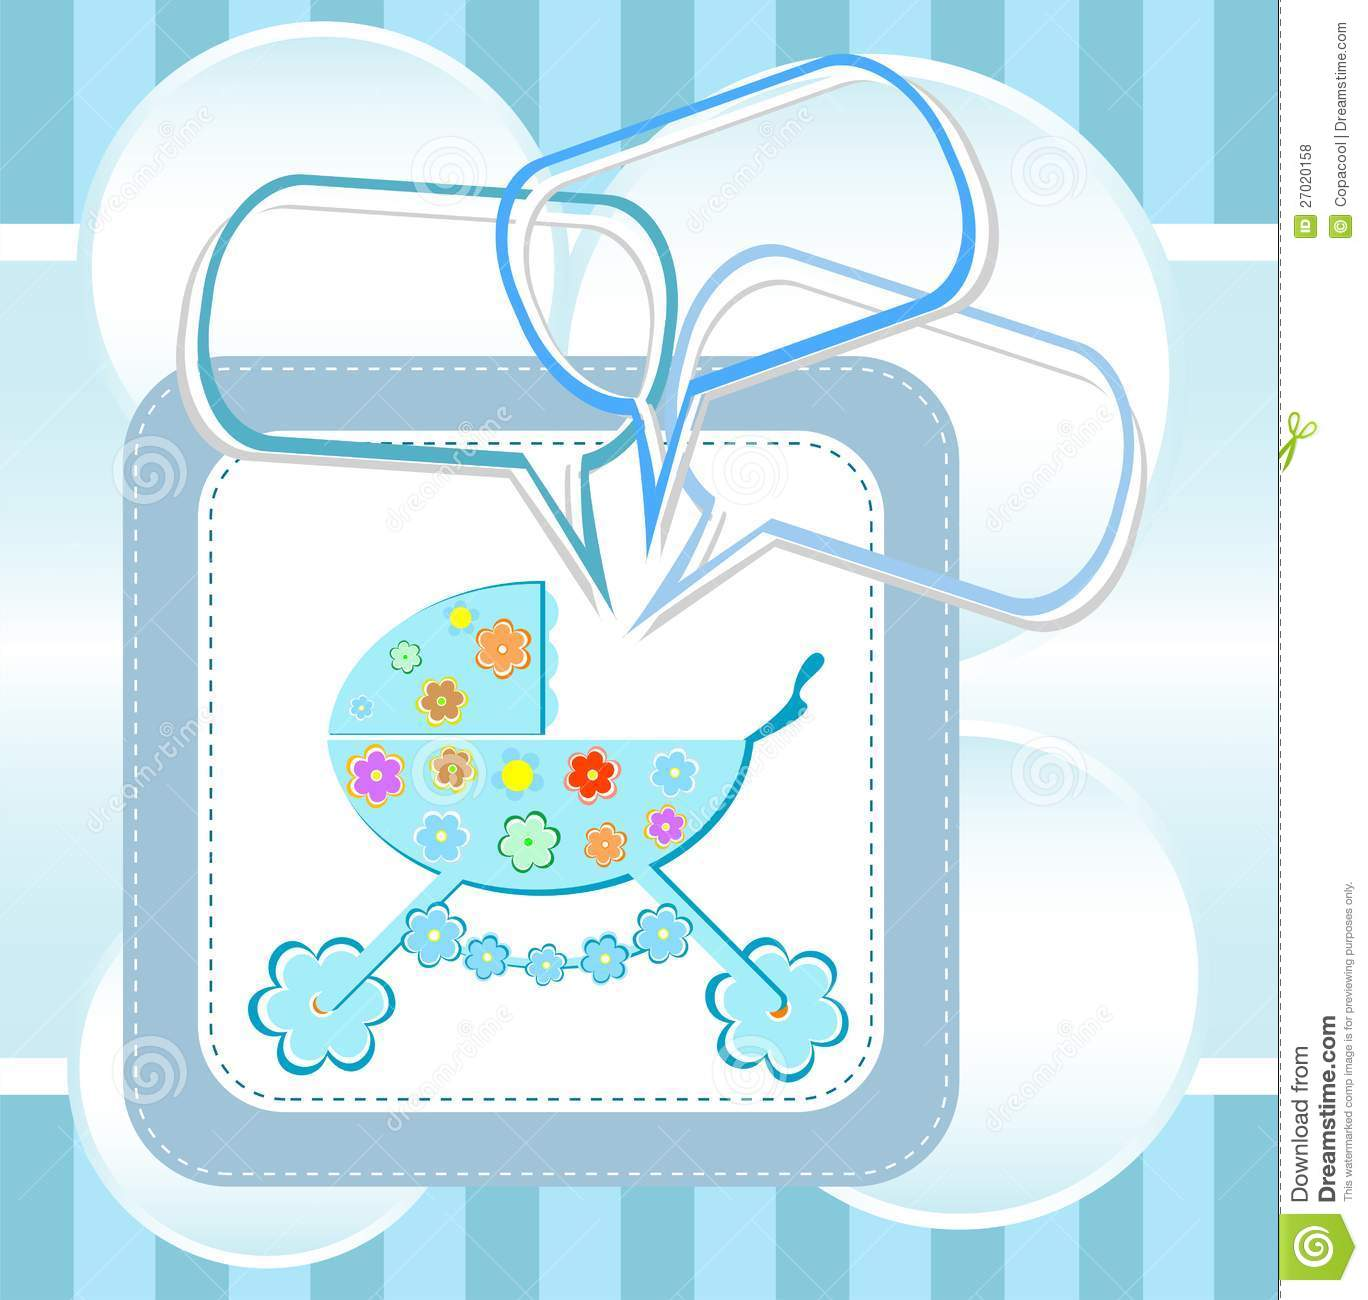 Baby Boy Arrival Announcement Card Royalty Free Stock